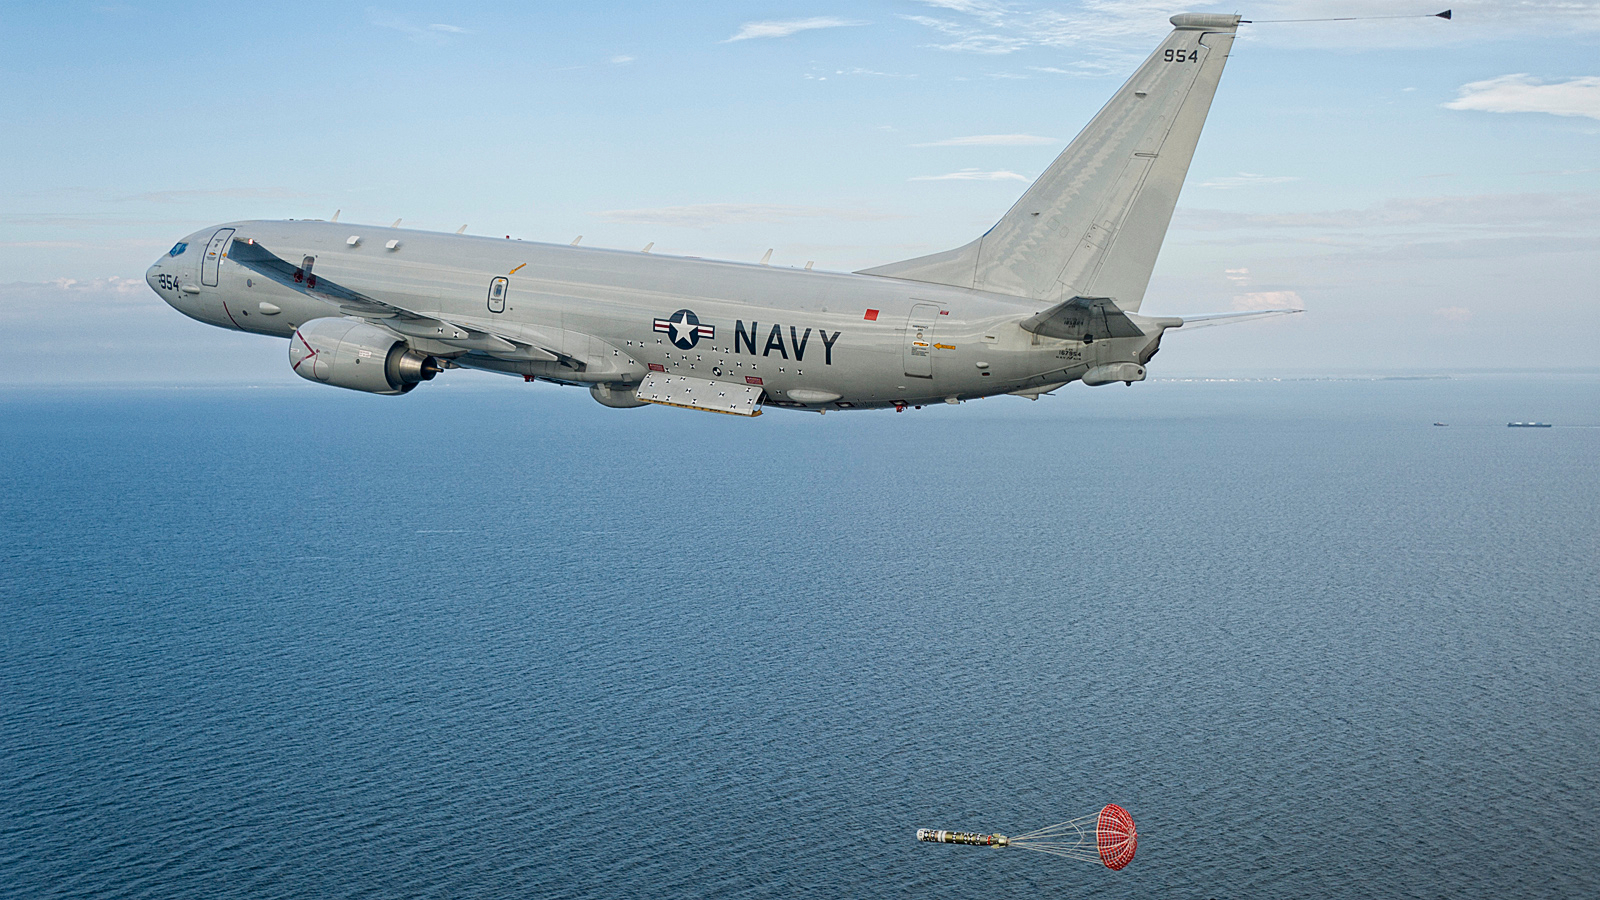 http://harmoniaphilosophica.files.wordpress.com/2013/02/p-8a-poseidon-torp-drop-usn-1.jpg